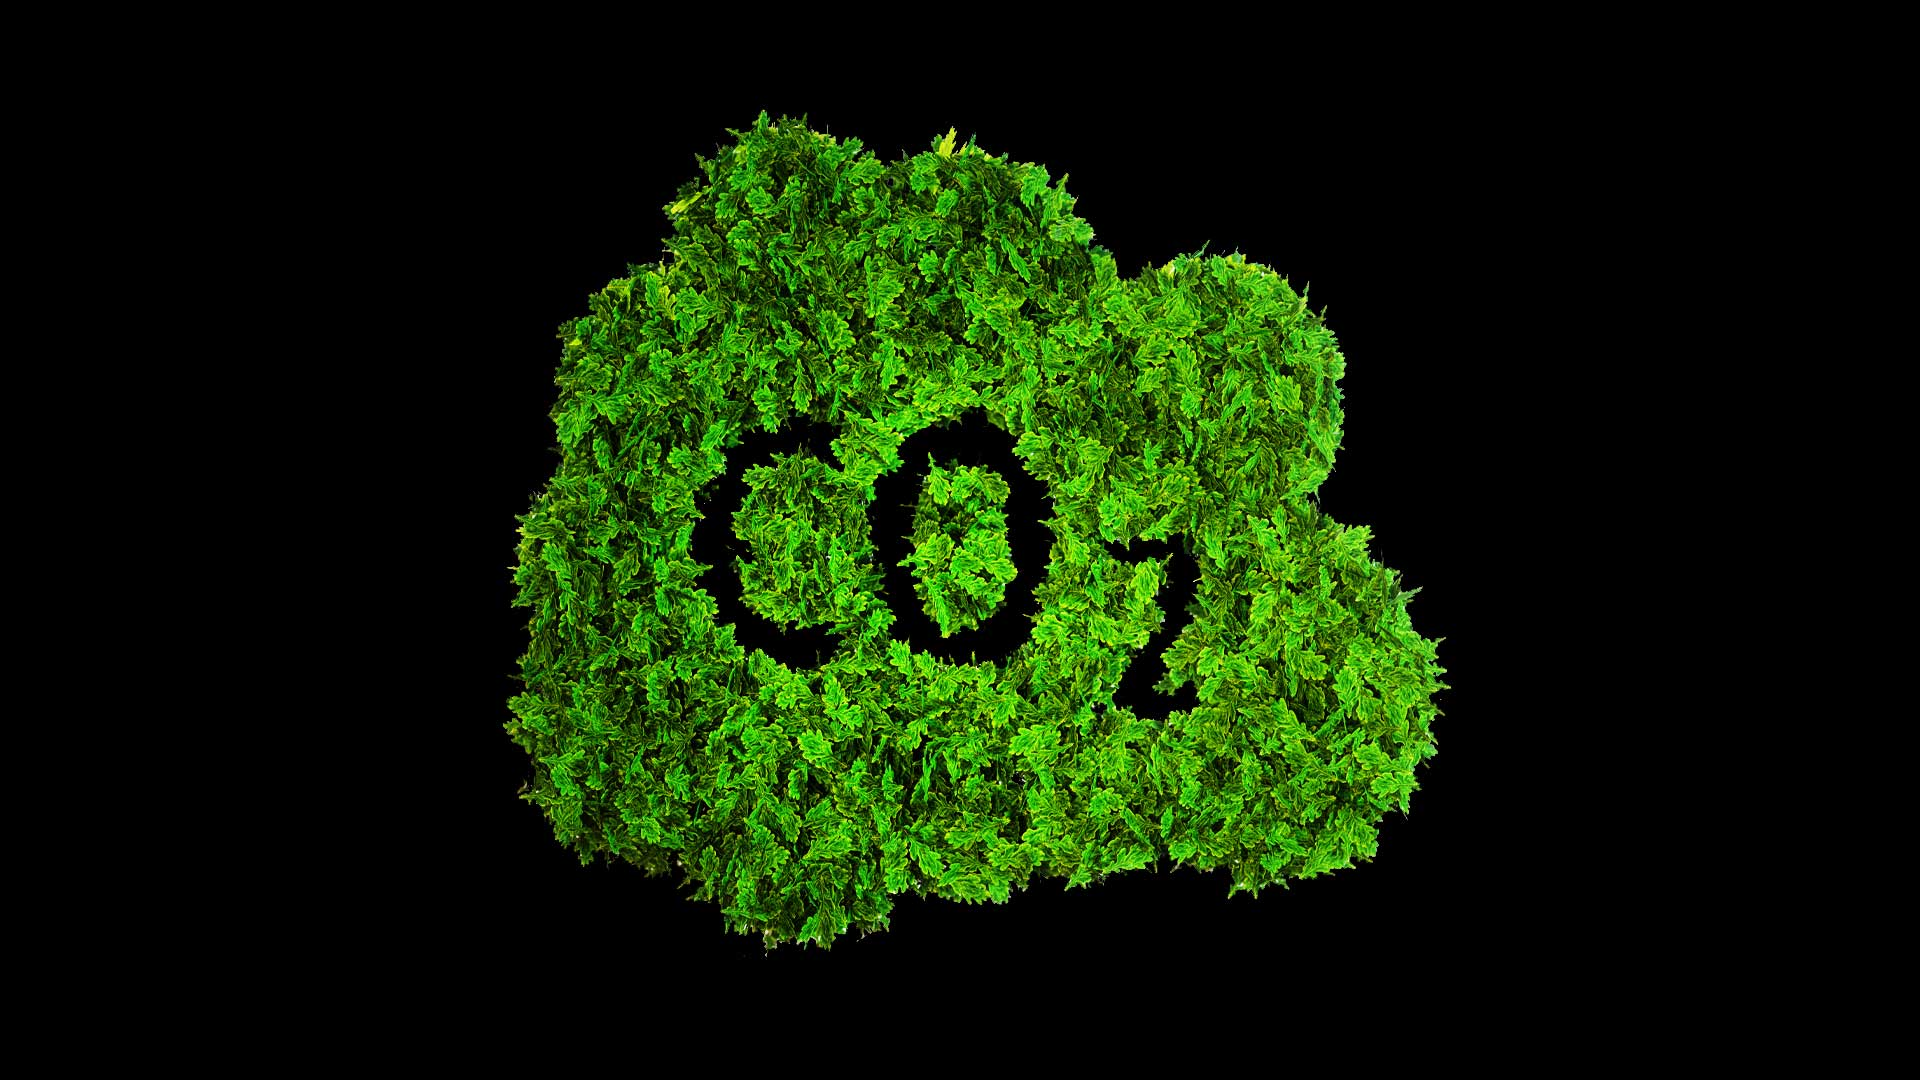 CO2 green leaves with black co2